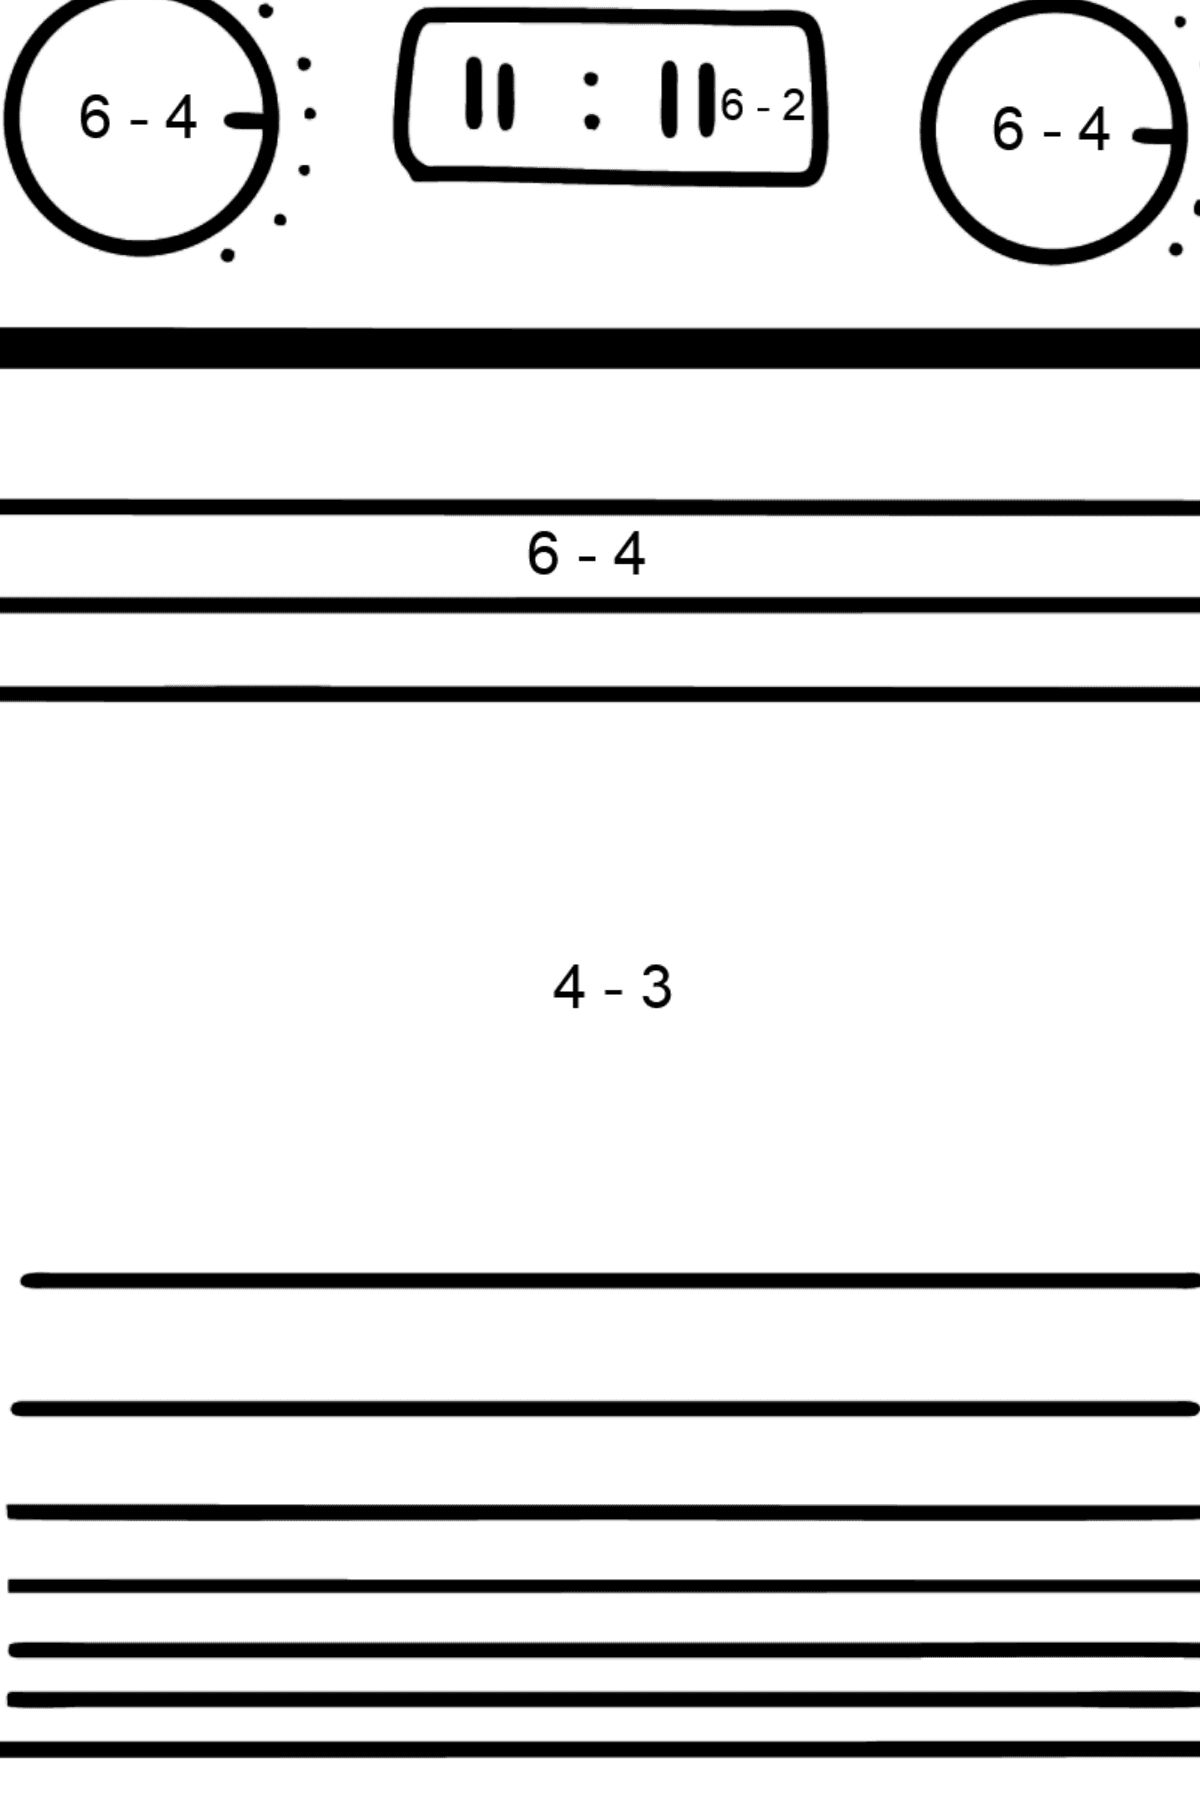 Oven coloring page - Math Coloring - Subtraction for Kids